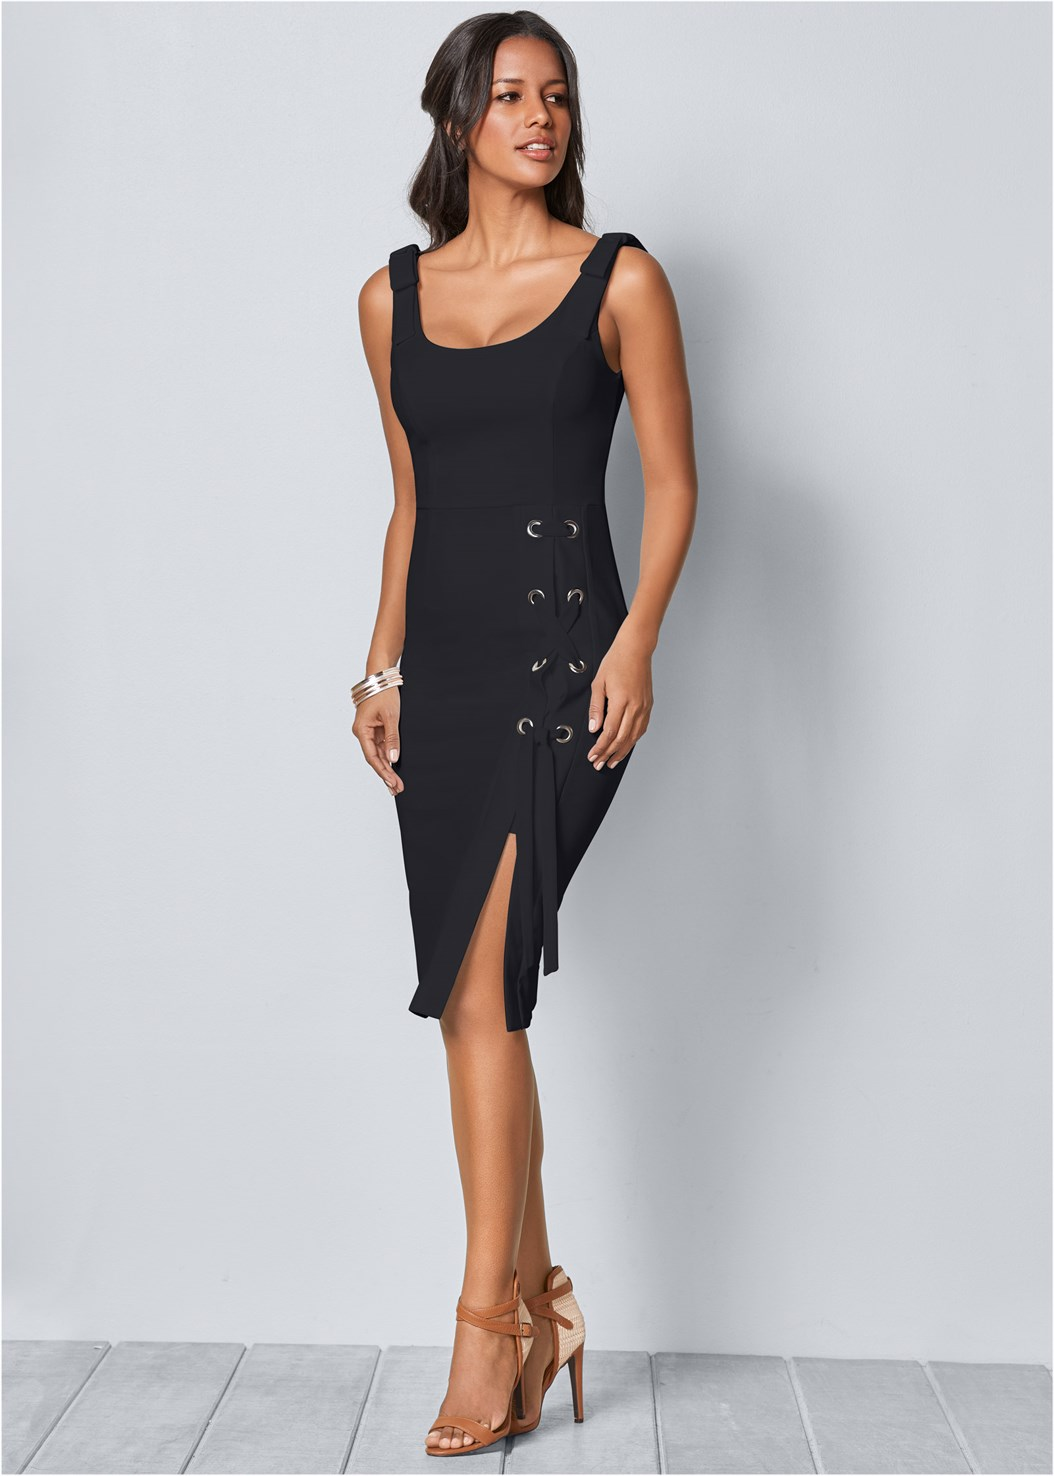 Lace Up Detail Sleeveless Dress,Push Up Bra Buy 2 For $40